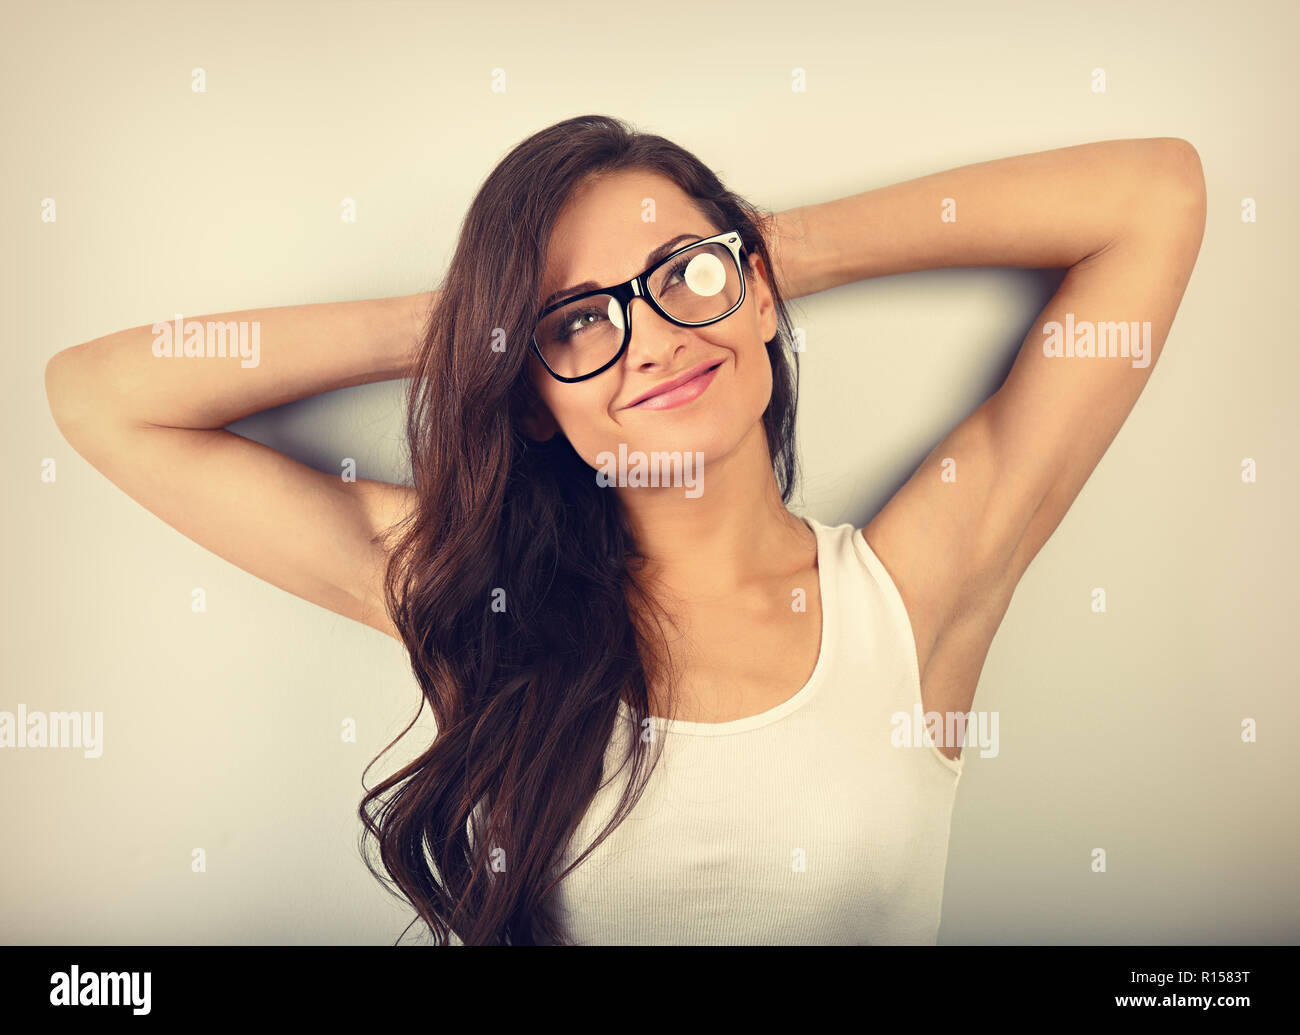 586d3b1a95 Beautiful relaxing woman in glasses dreaming with thinking look up on empty copy  space. Closeup